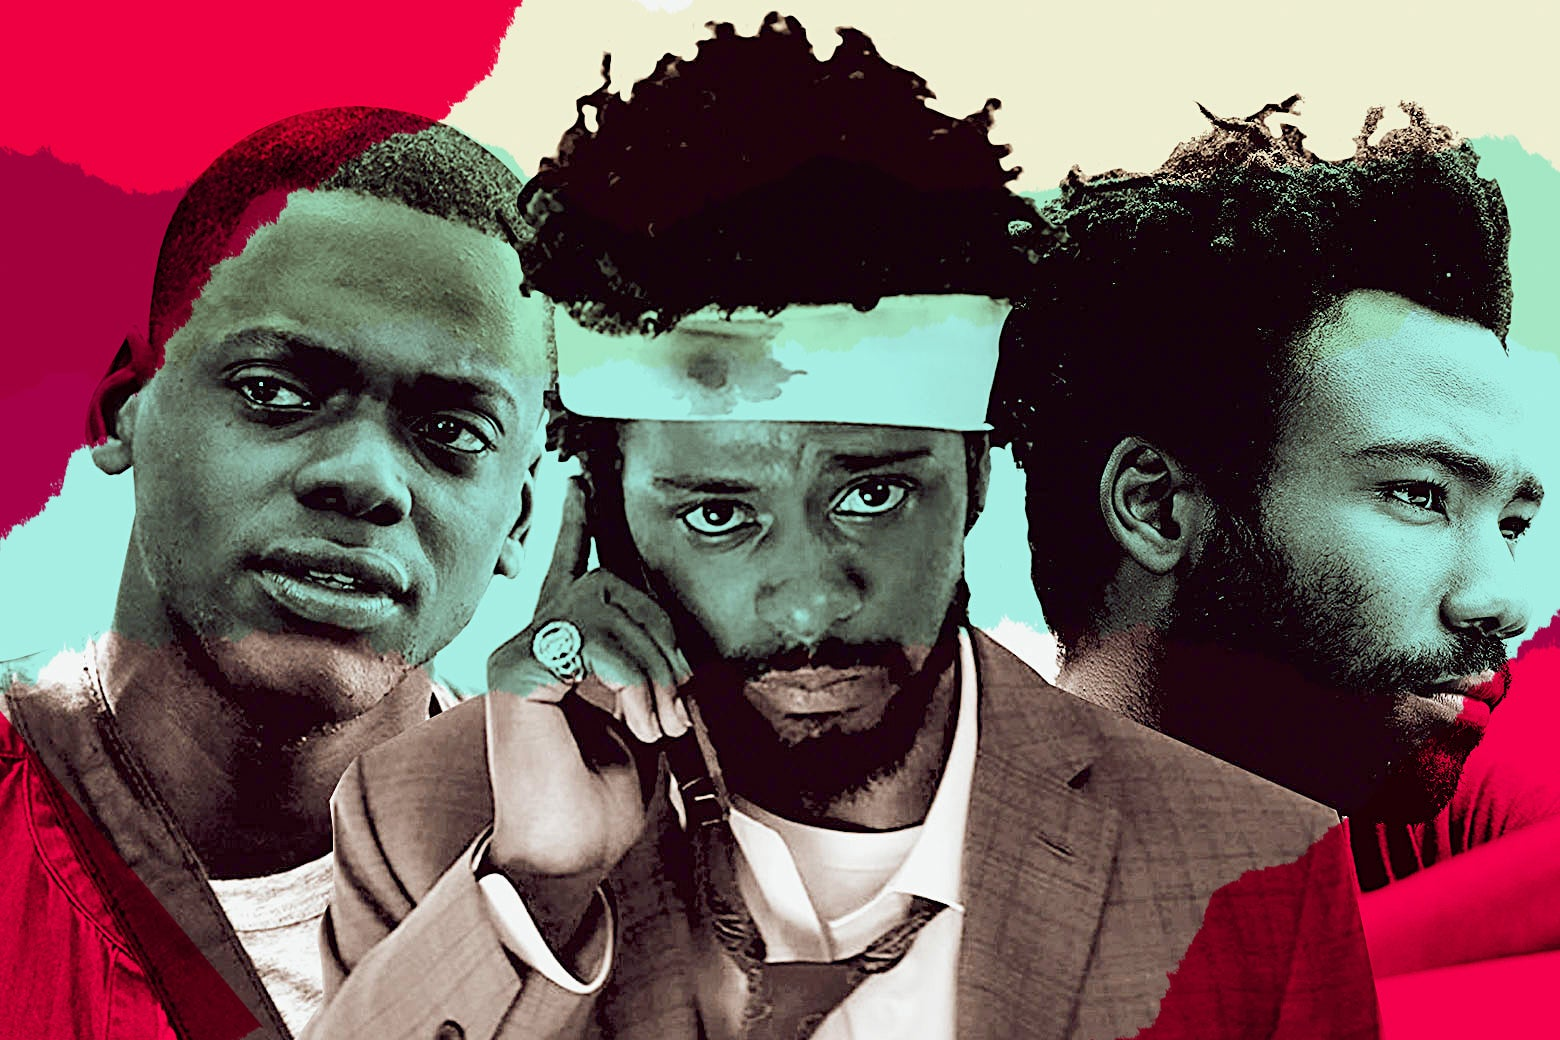 Actors Daniel Kaluuya in Get Out, Lakeith Stanfield in Sorry to Bother You, and Donald Glover in Atlanta.